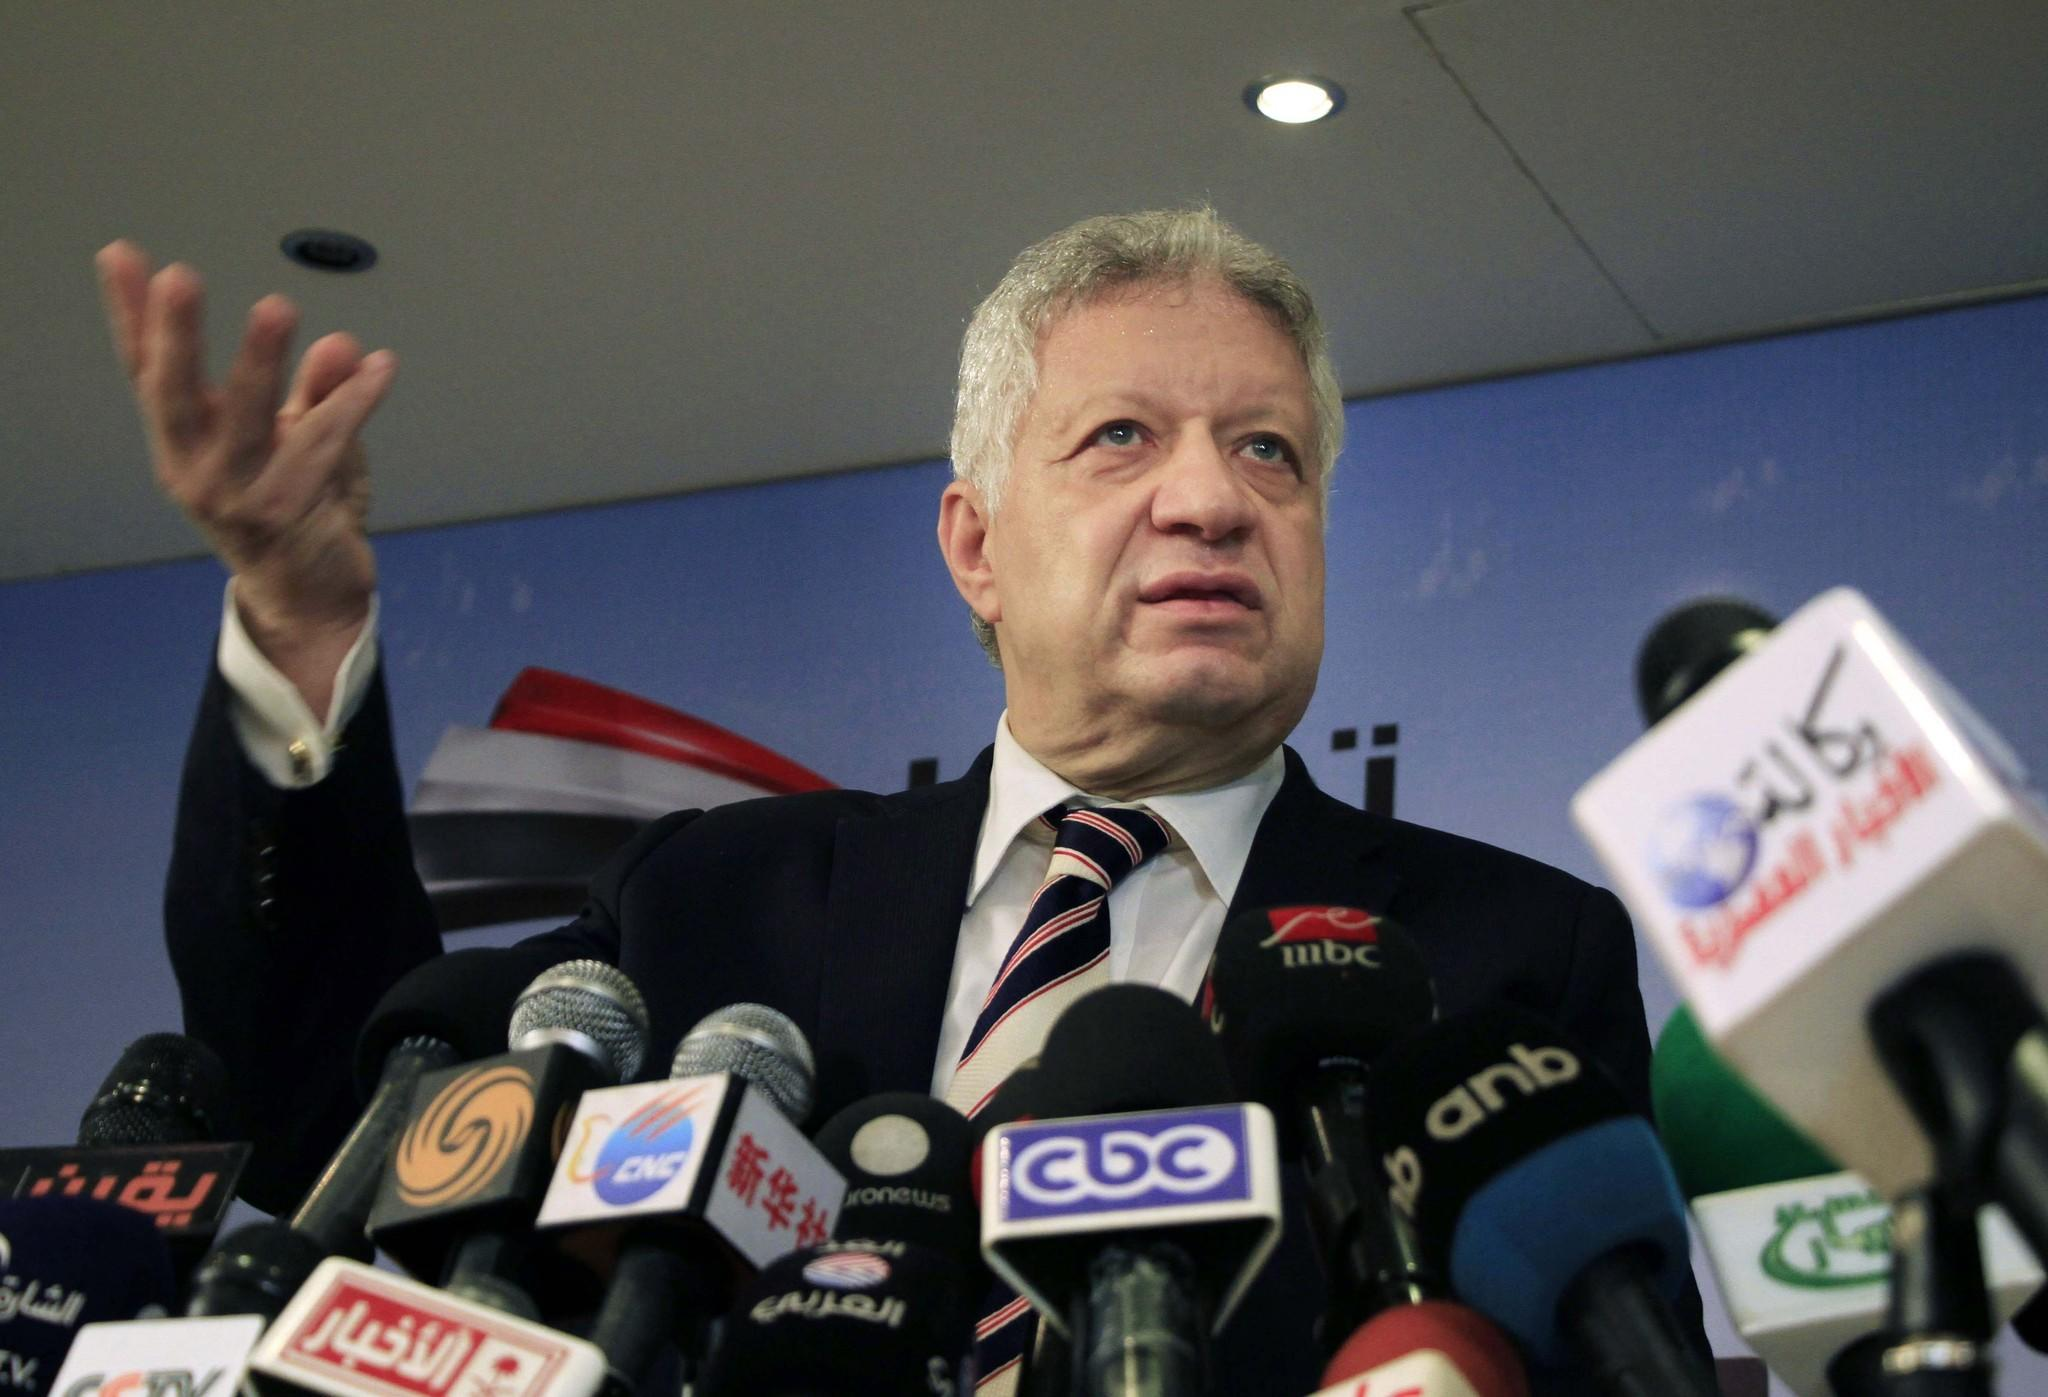 Lawyer Mortada Mansour annonces he will run for president of Egypt at a news press conference in Cairo on Sunday.